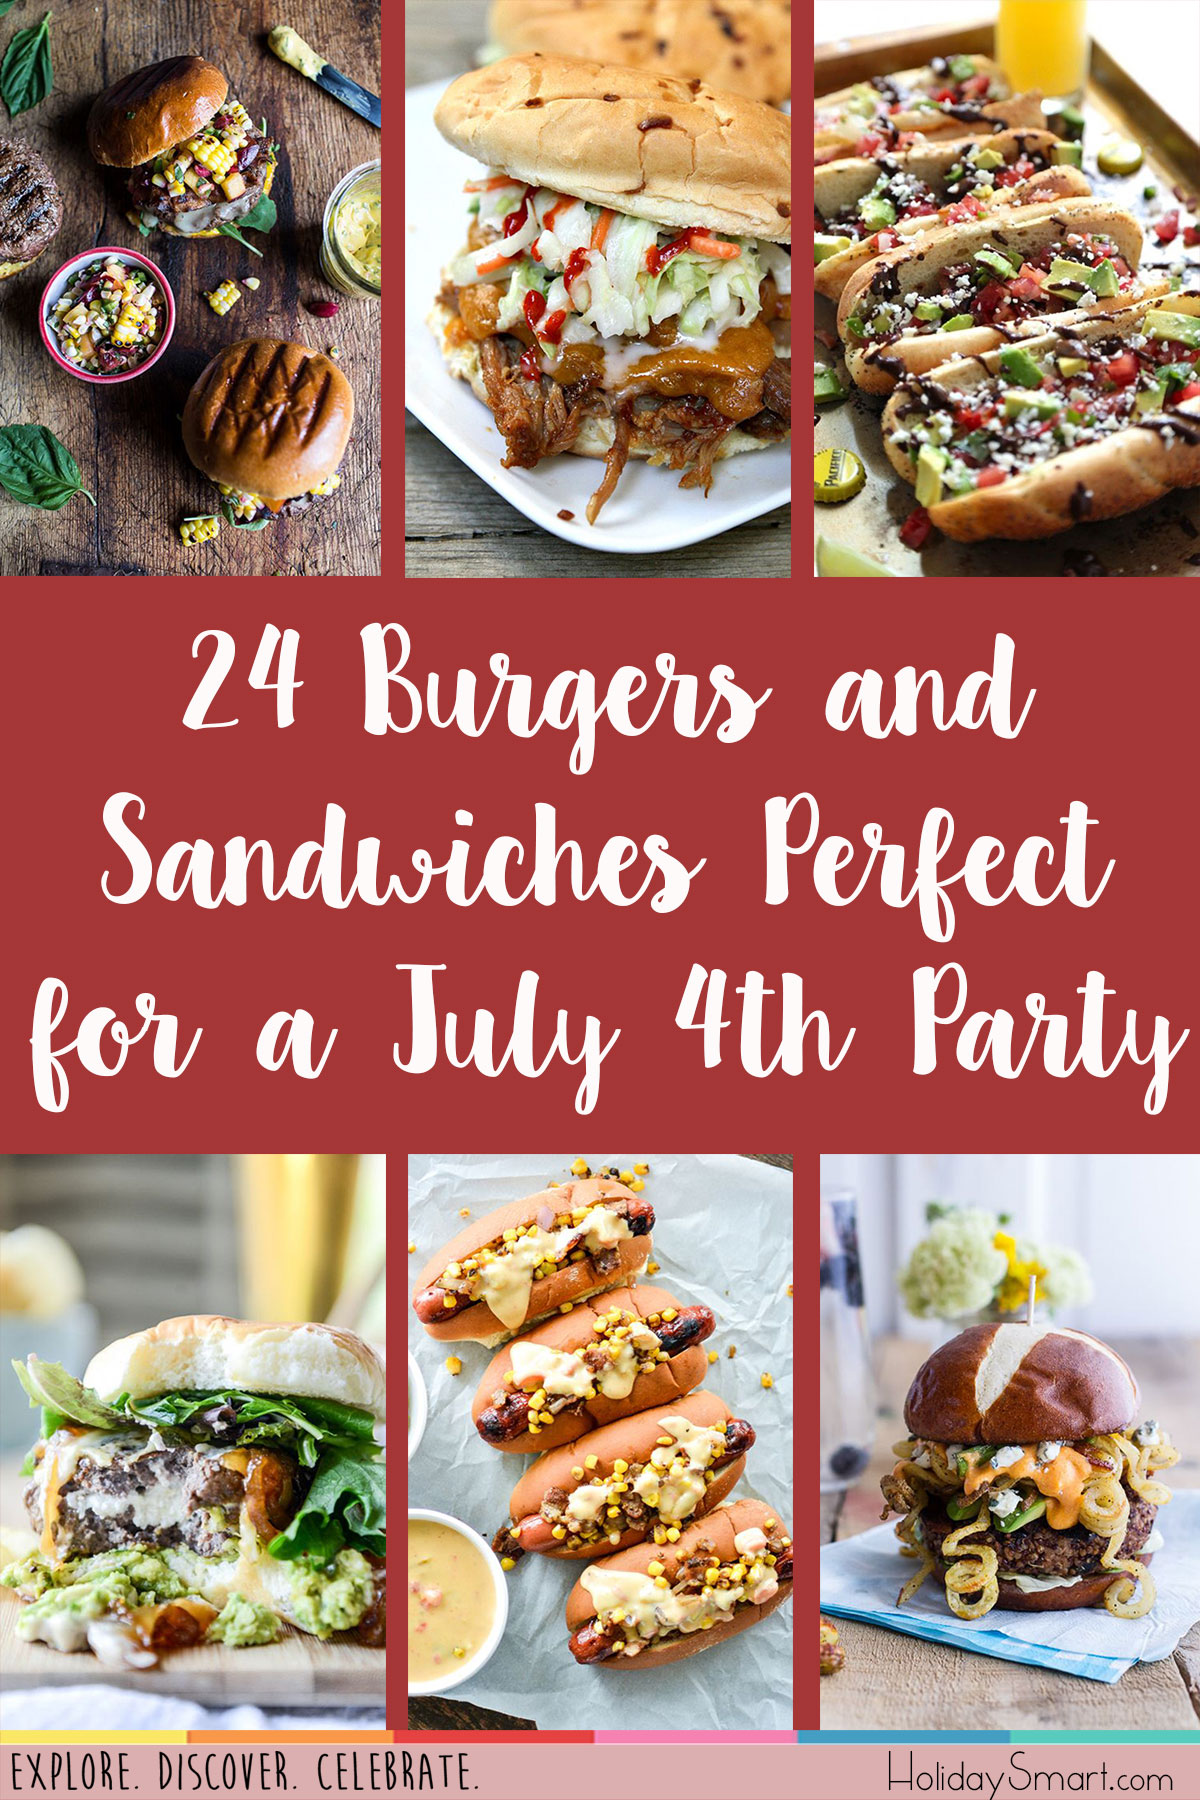 24 Burgers and Sandwiches Perfect for a July 4th Party